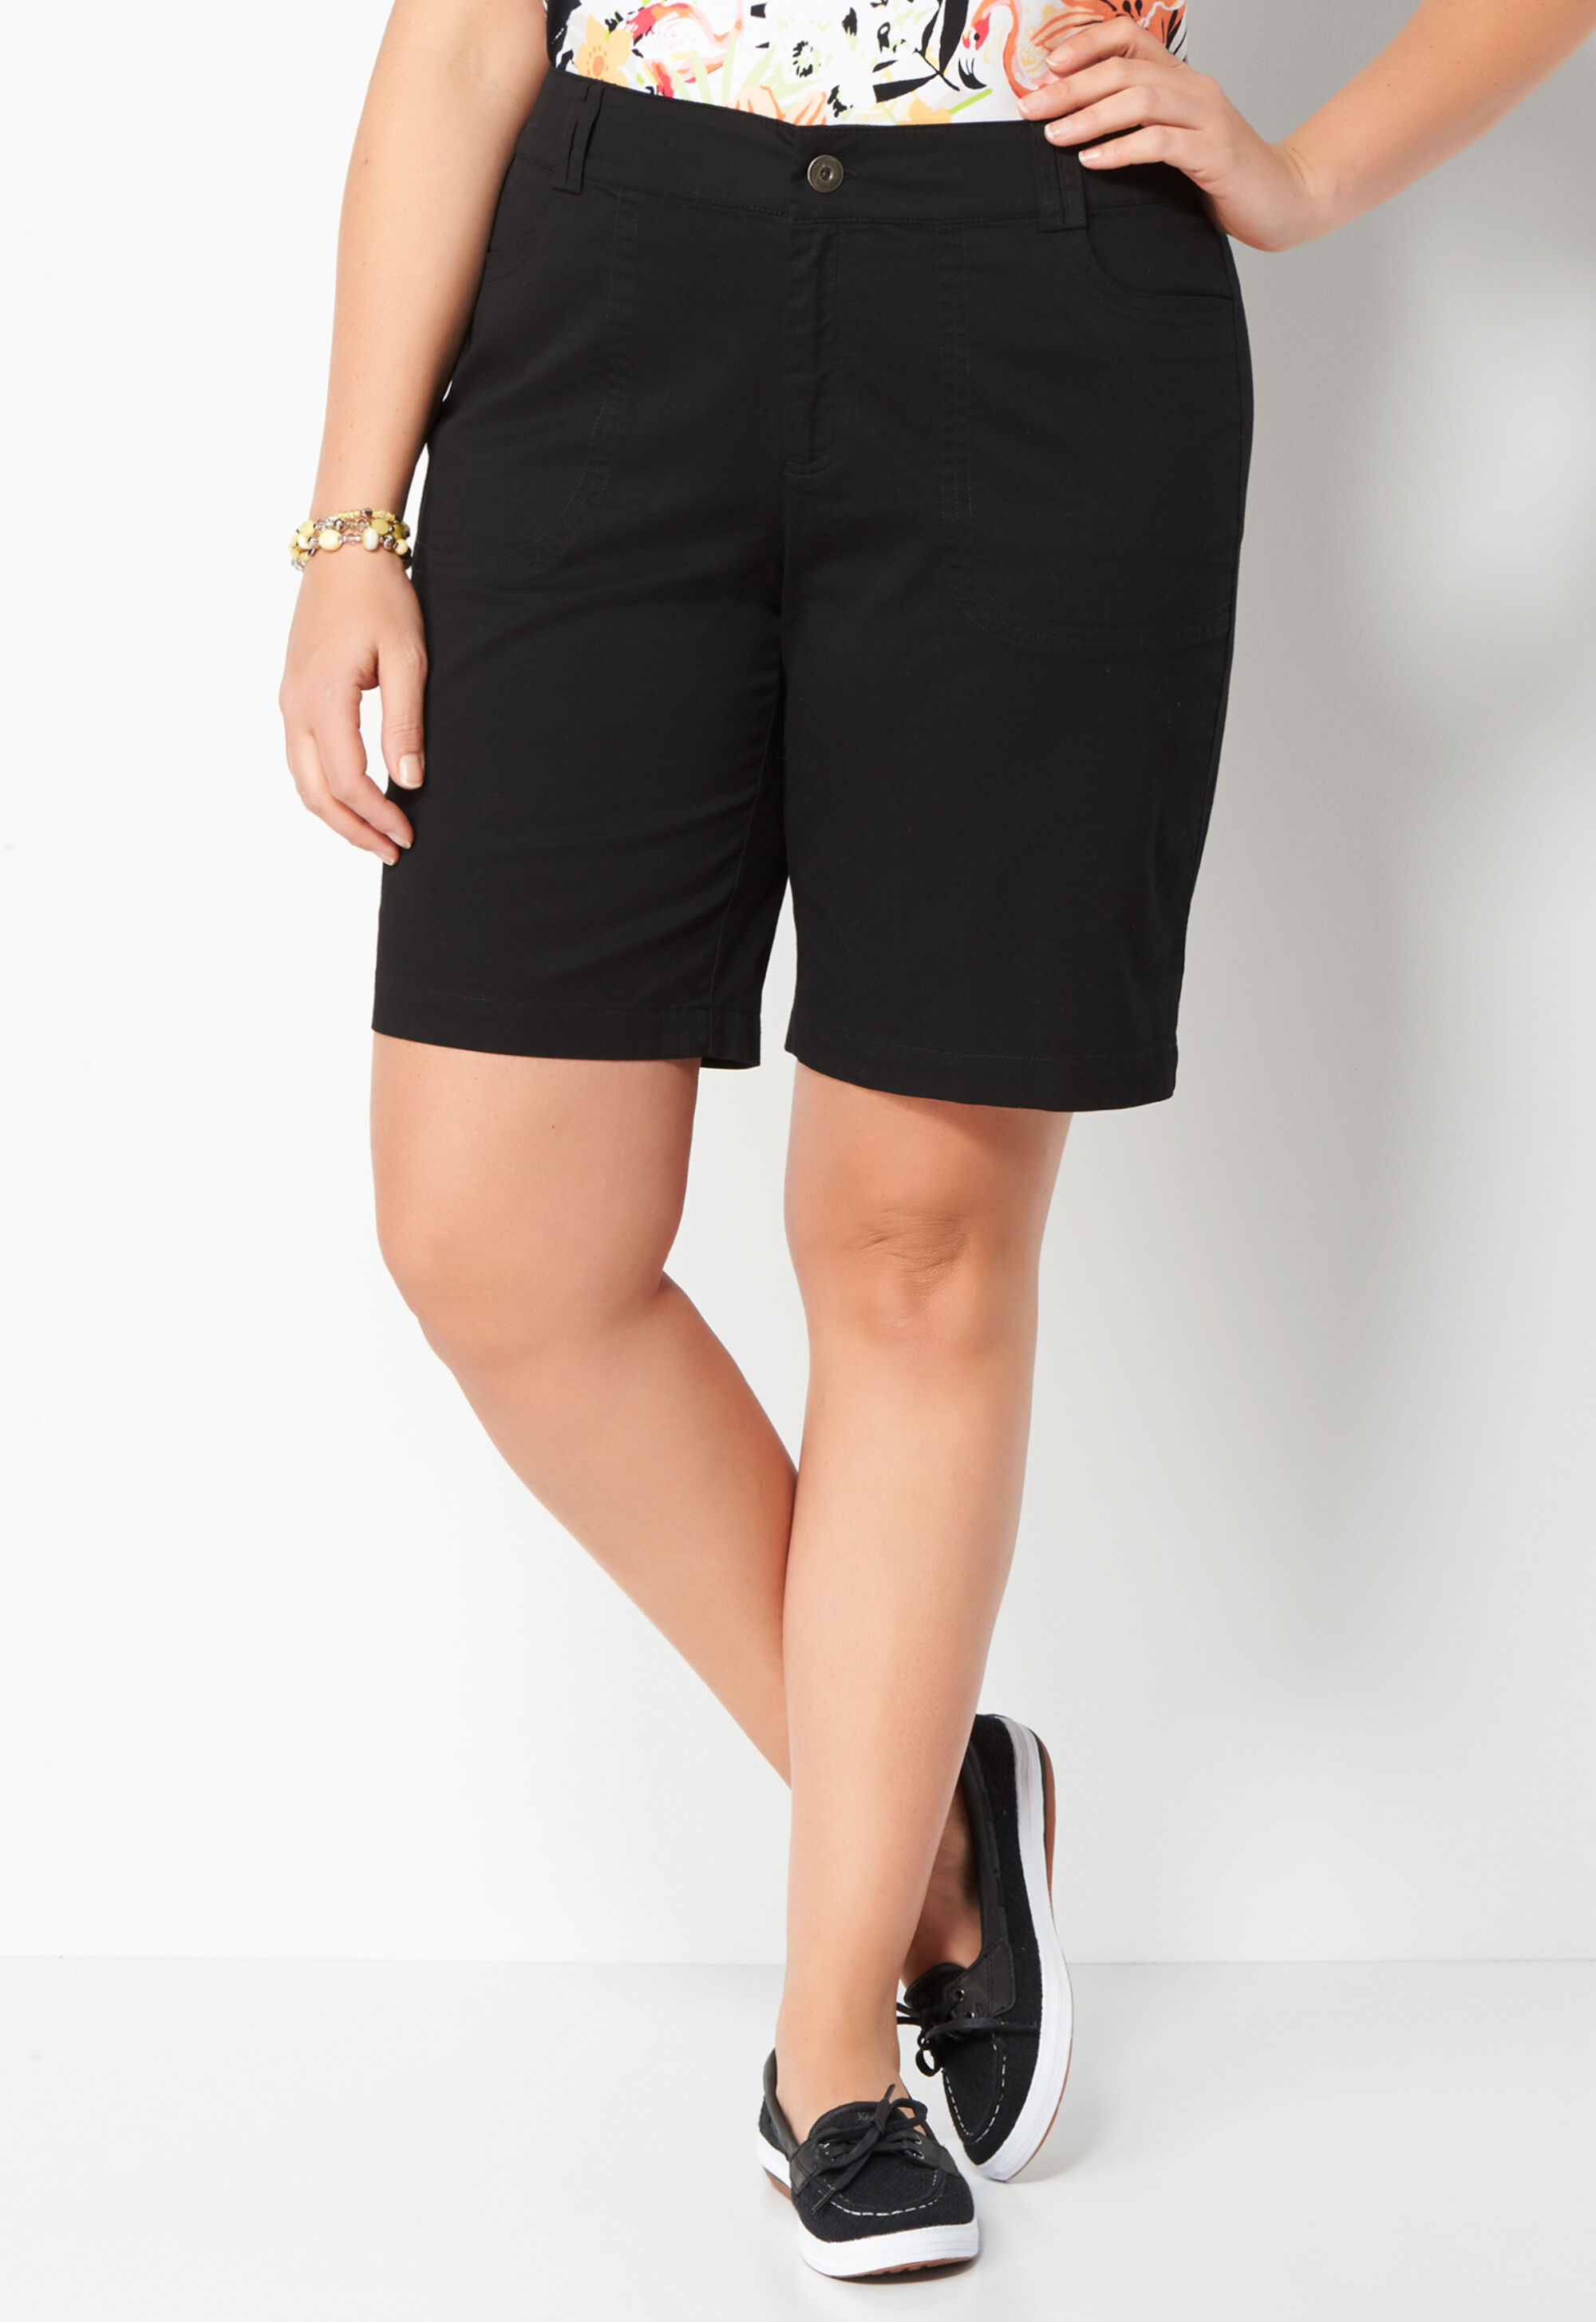 Women's Plus Size Capris, Shorts, & Skorts: Christopher & Banks ...